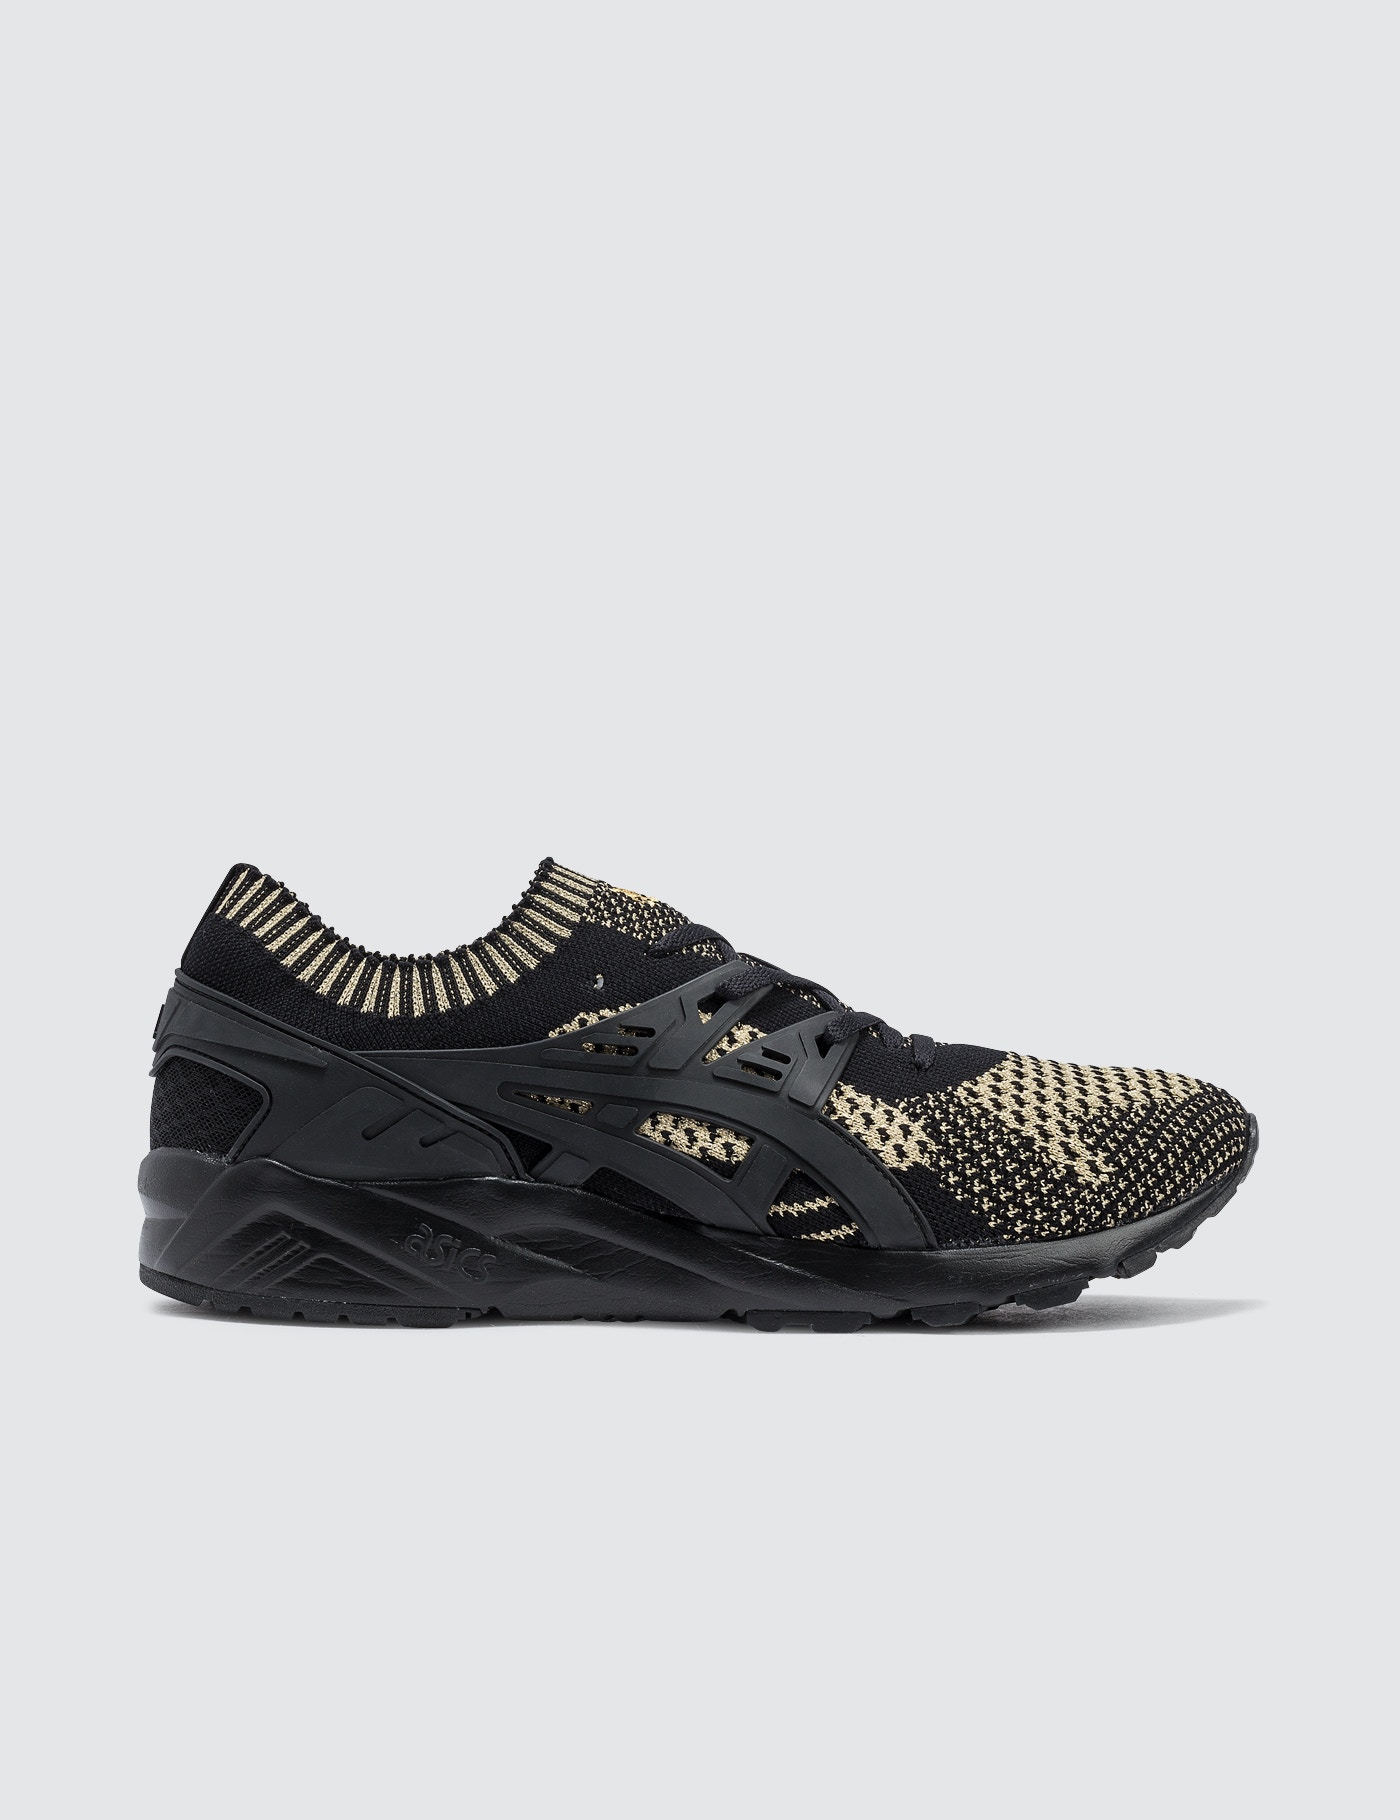 the latest 7c43f f03ca Gel-Kayano Trainer Knit, ASICS